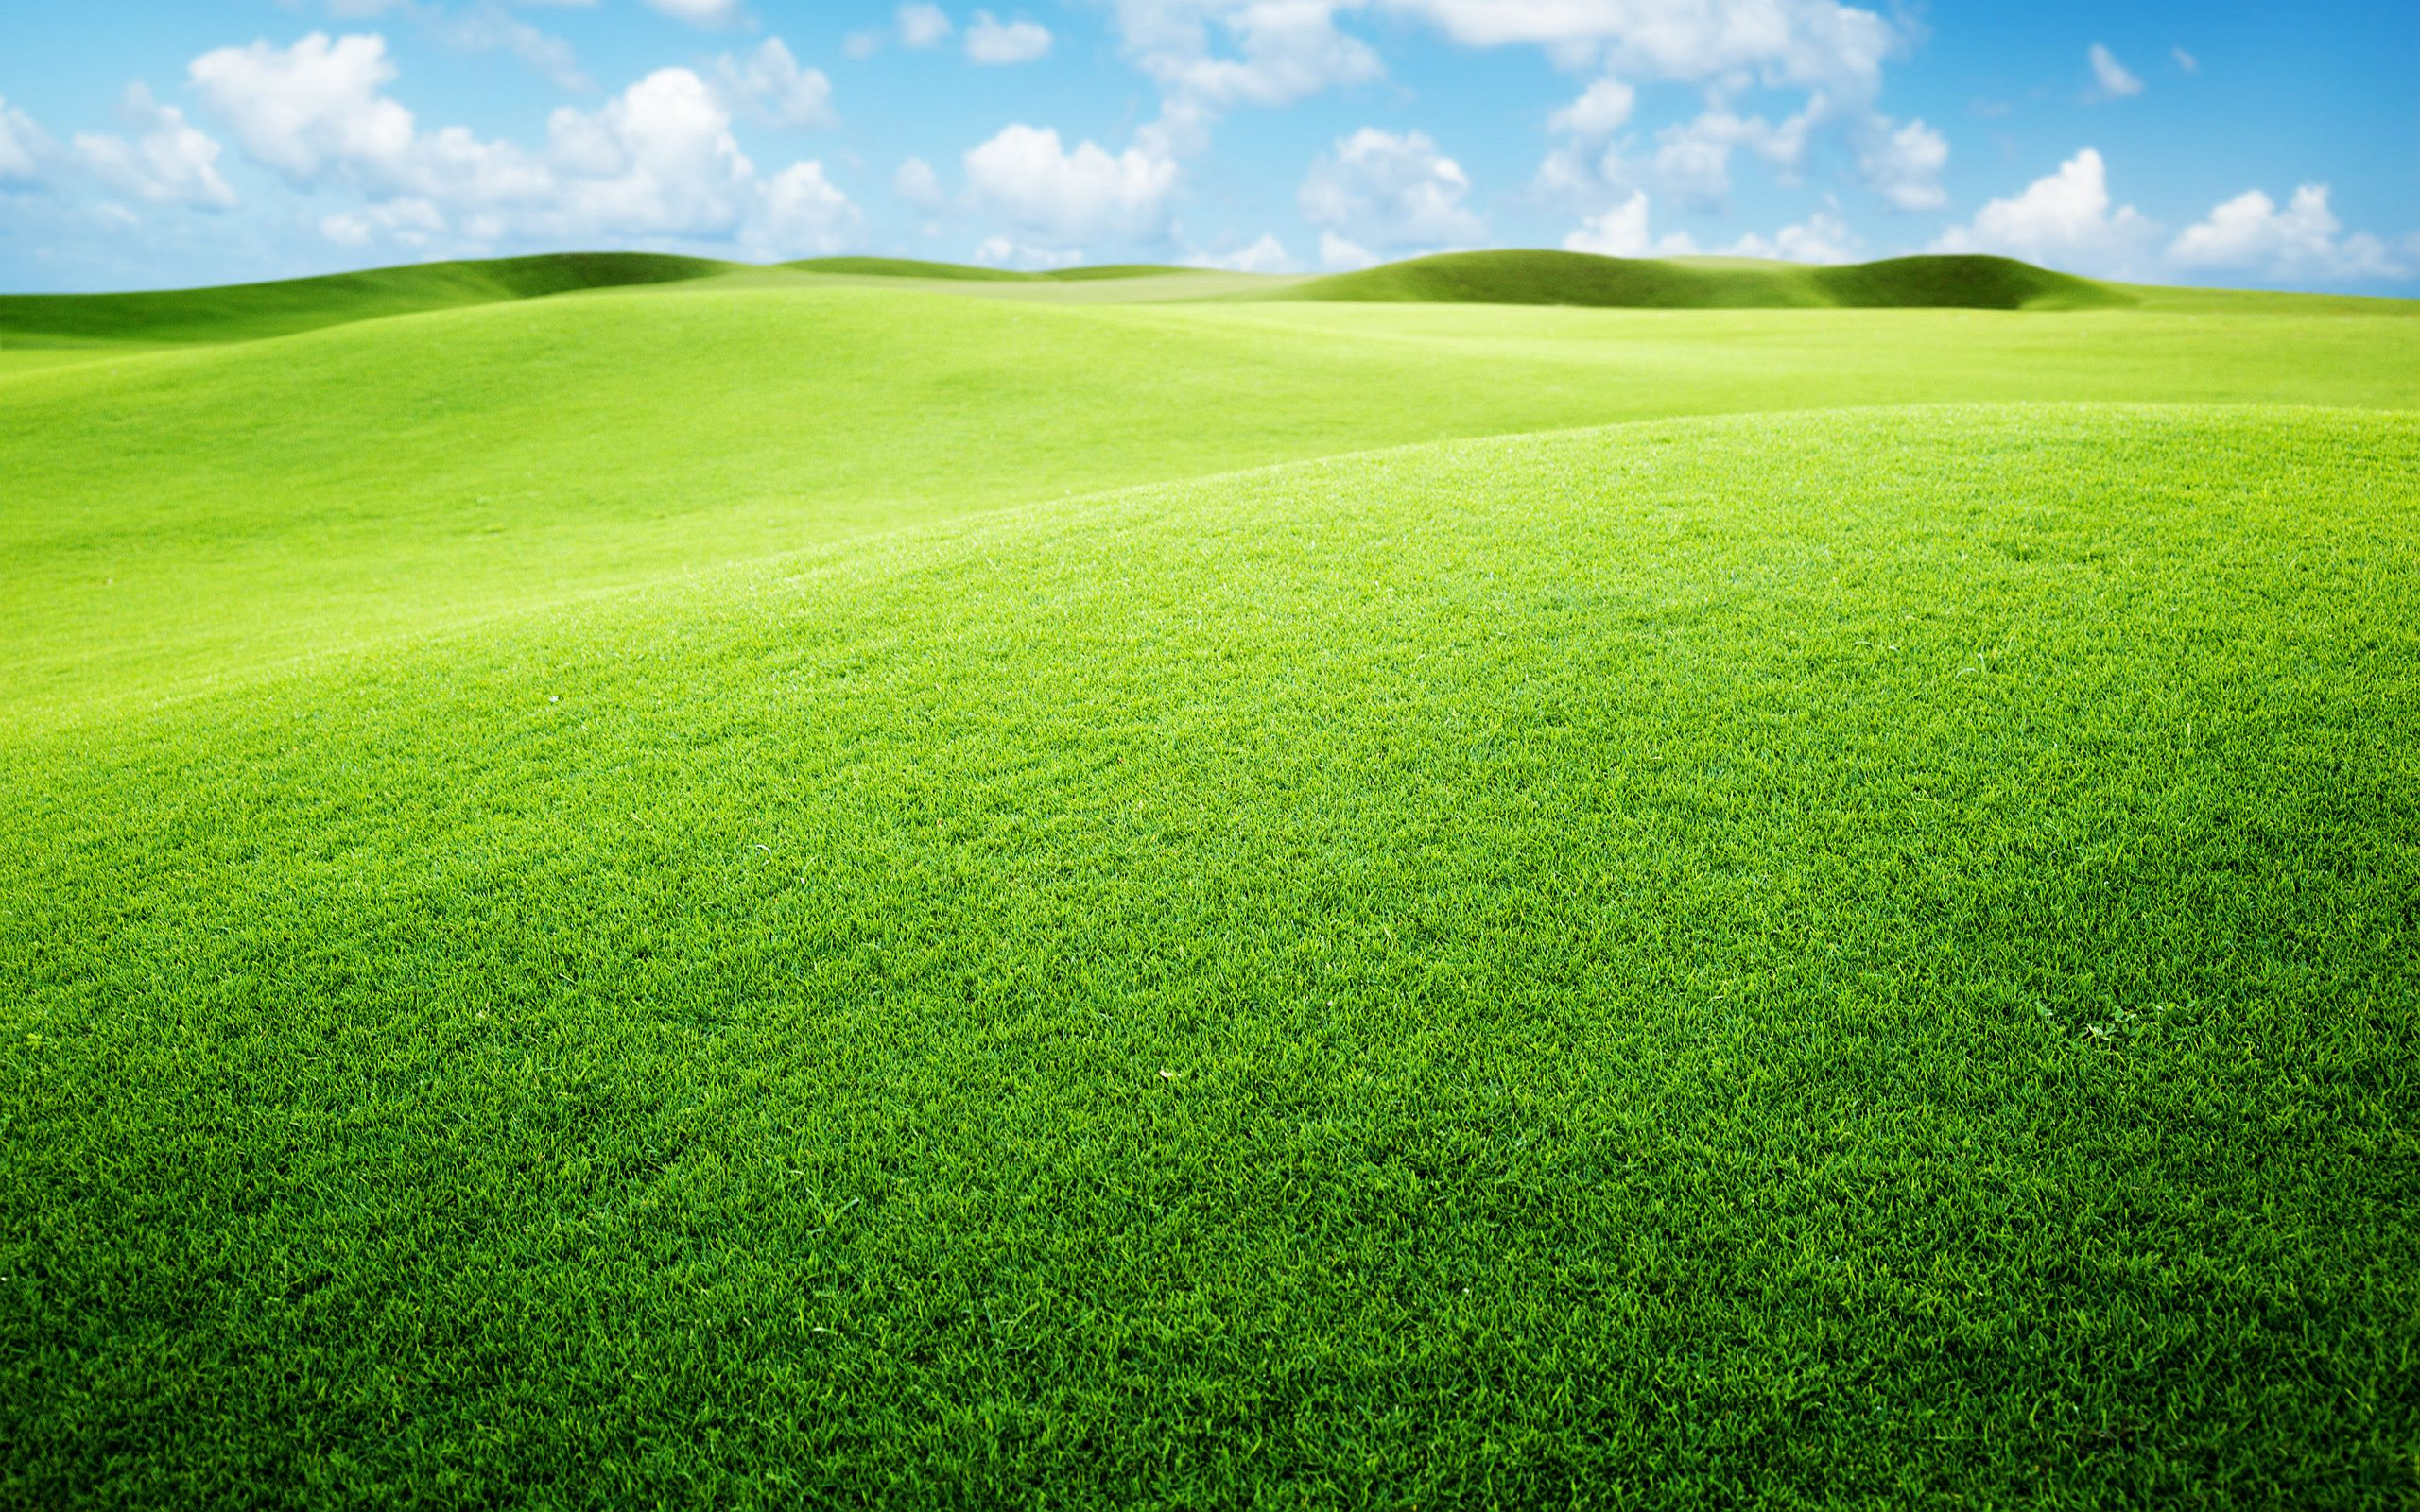 grasslands background 39652